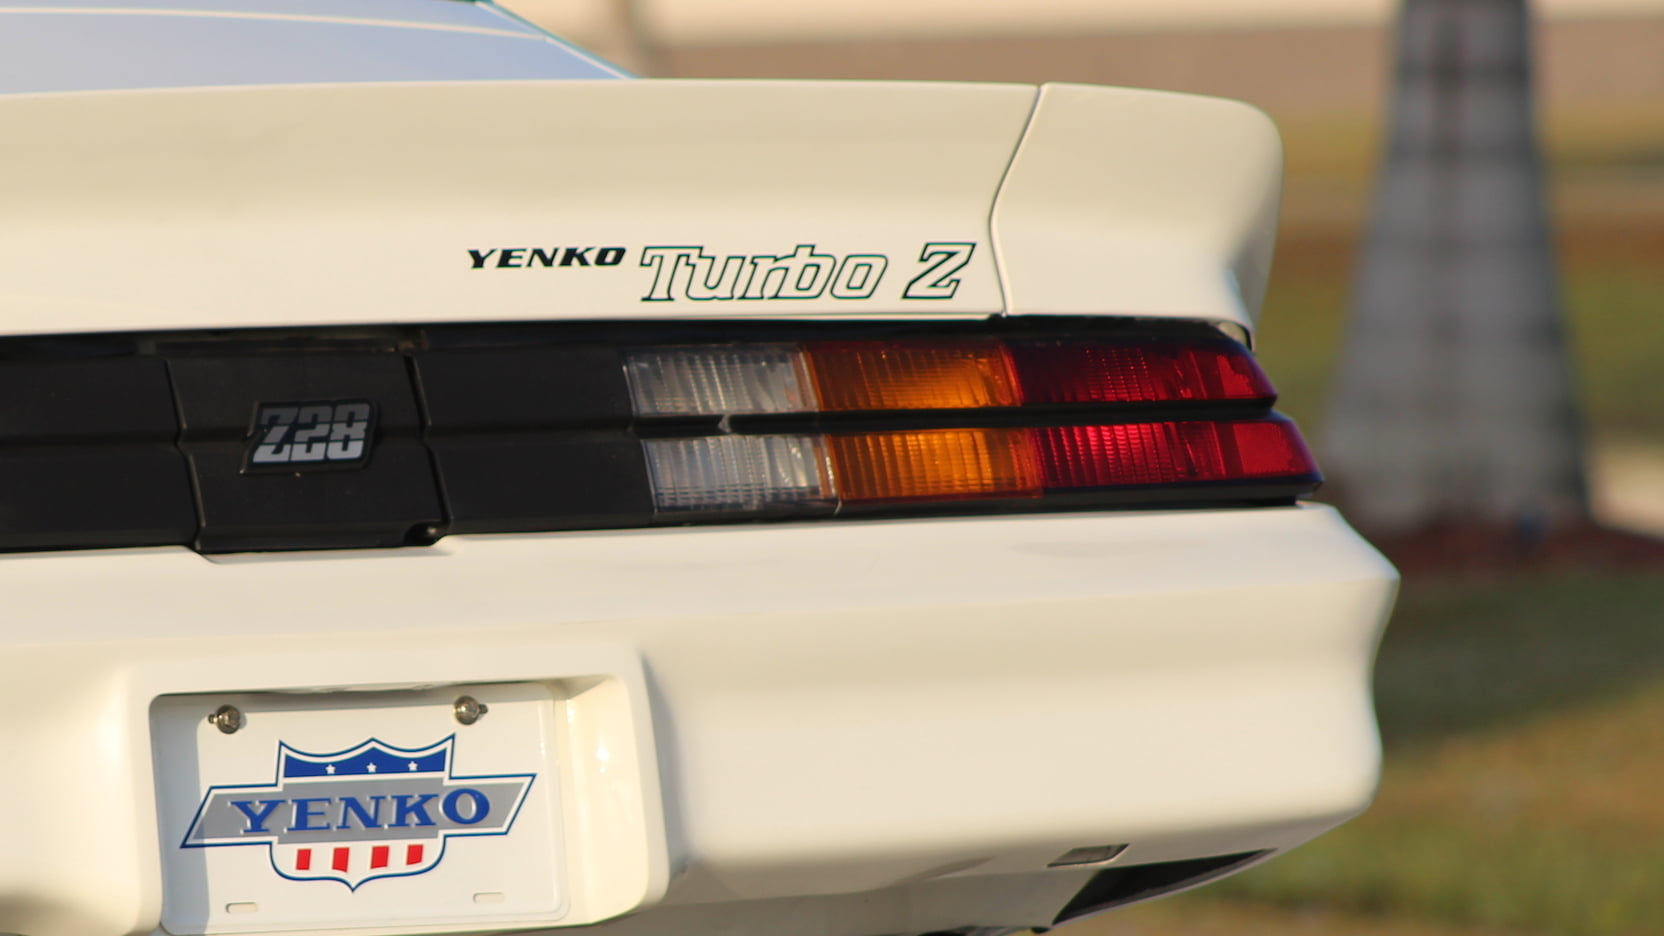 1981 Chevrolet Yenko Turbo Z rear detail